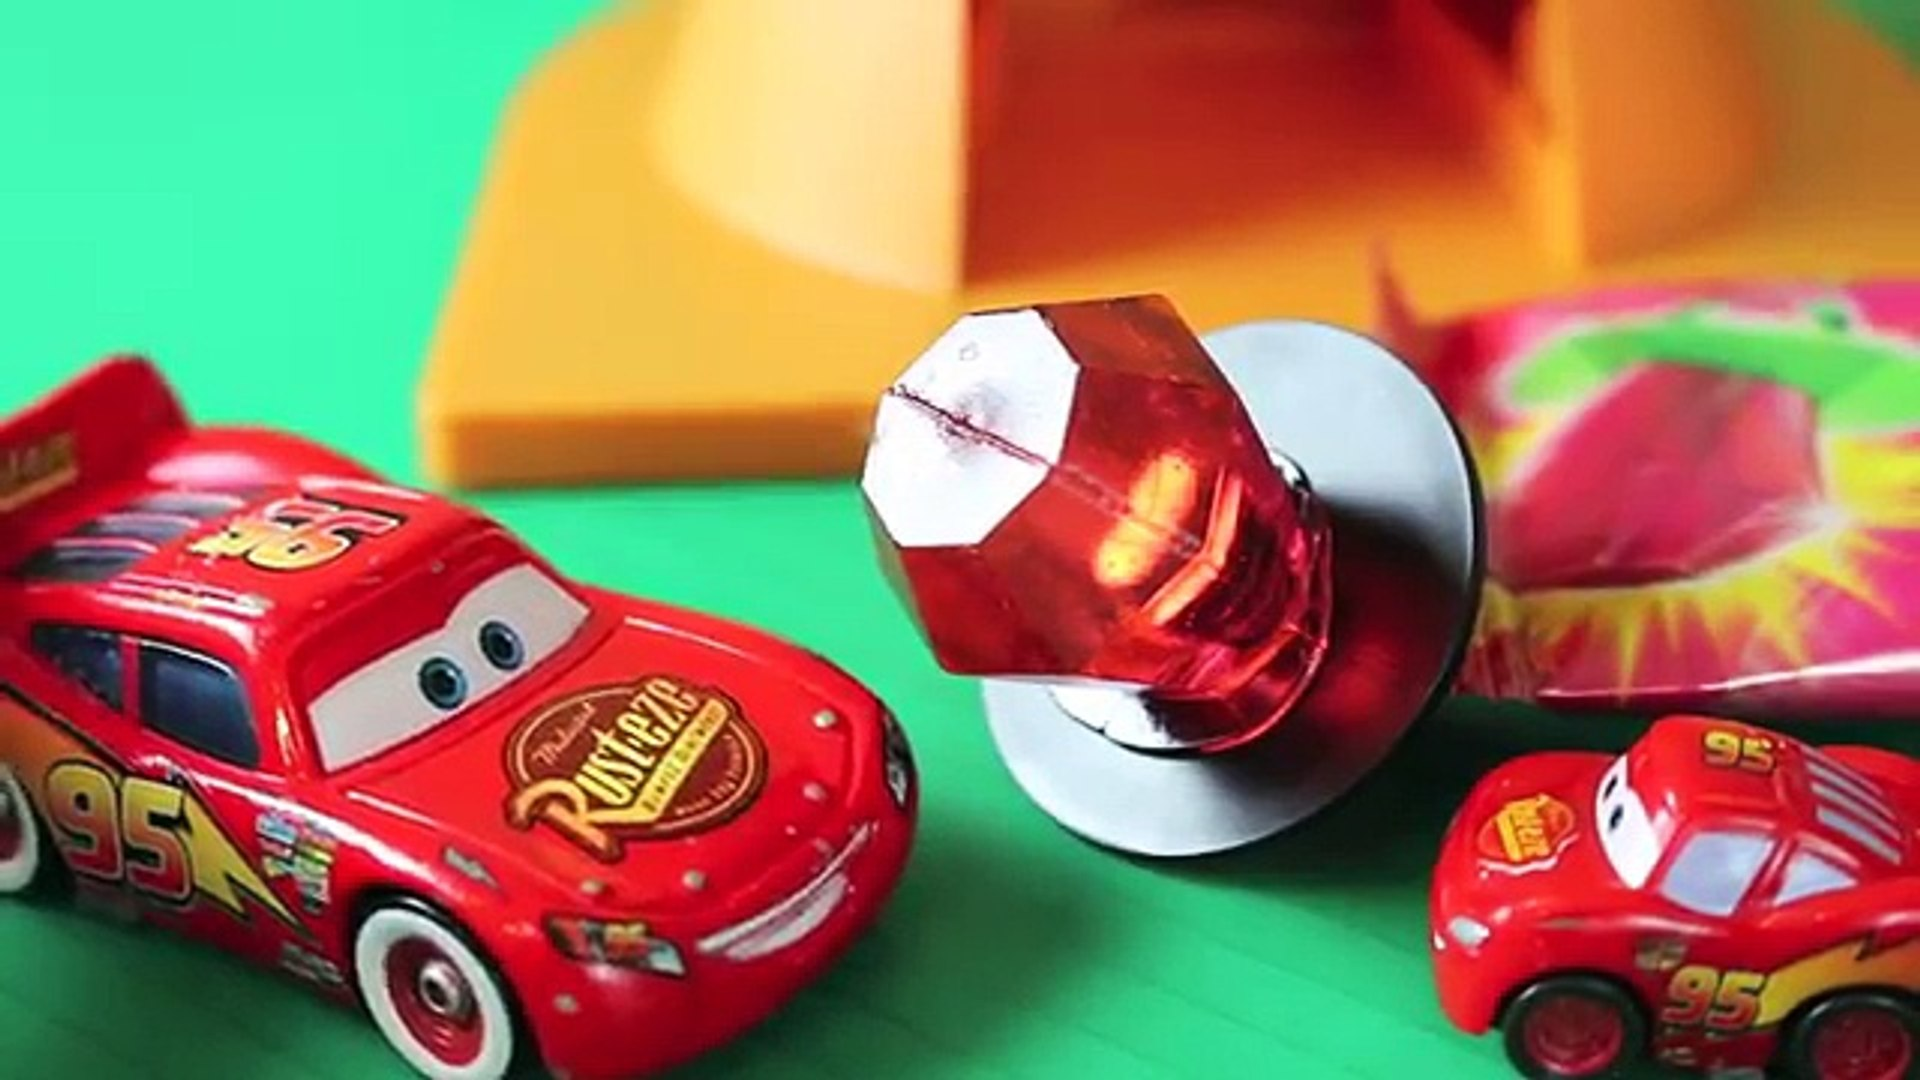 Play Doh Candy Ring Pop with Disney Cars Lightning McQueen Family Play Doh Tutorial Disney